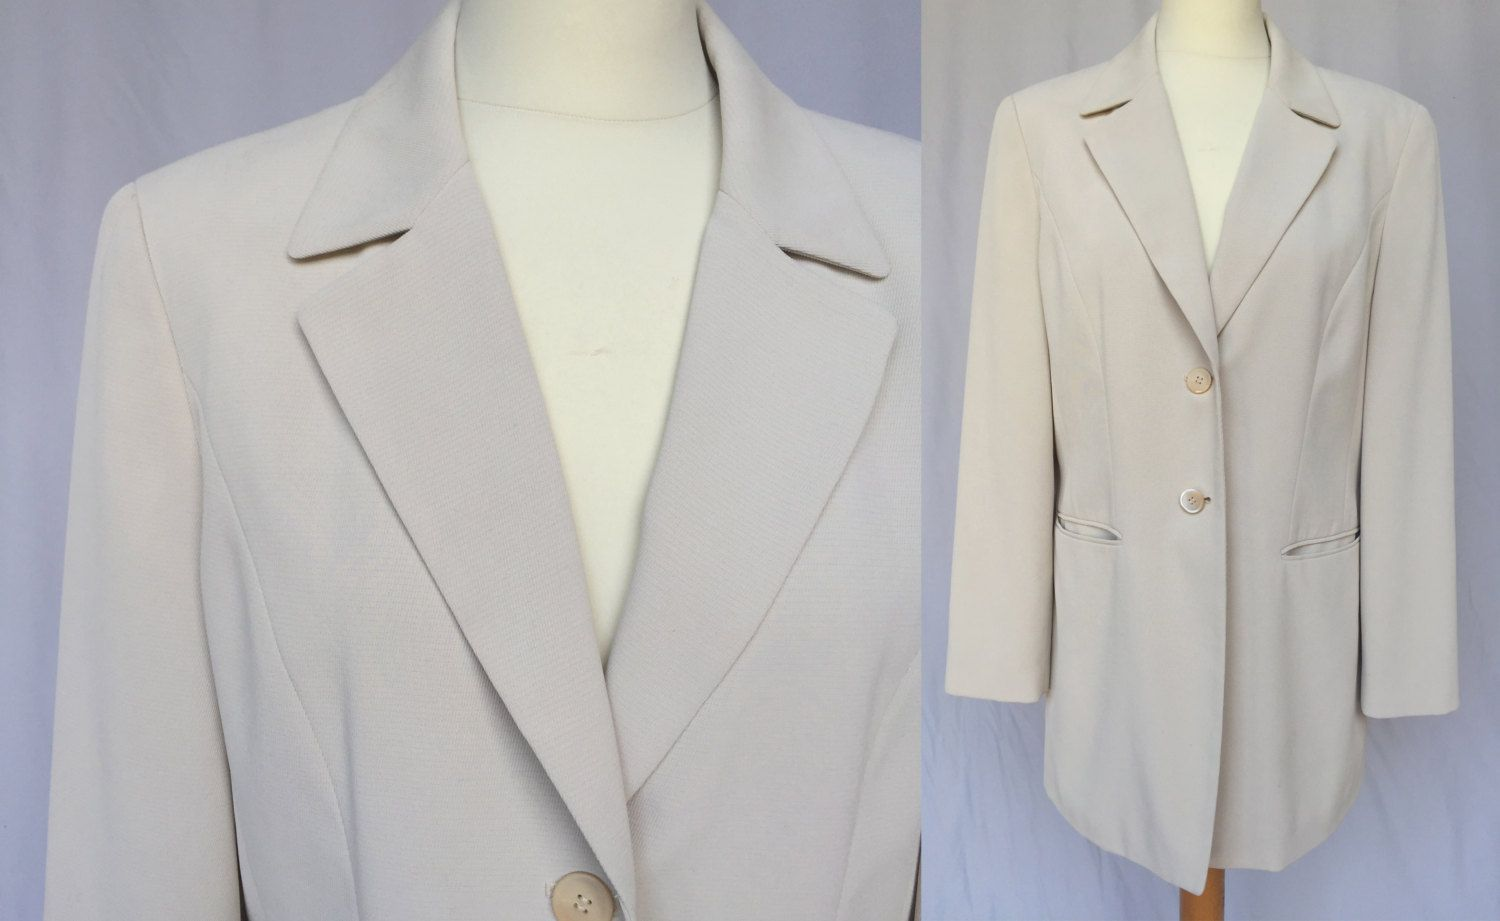 048aaa7a0b02 ... off white formal secretary street style quality jacket Minimalistic  Preppy long Blazer wedding retro top office Size M L by RosaBoutiqueStudio  on Etsy